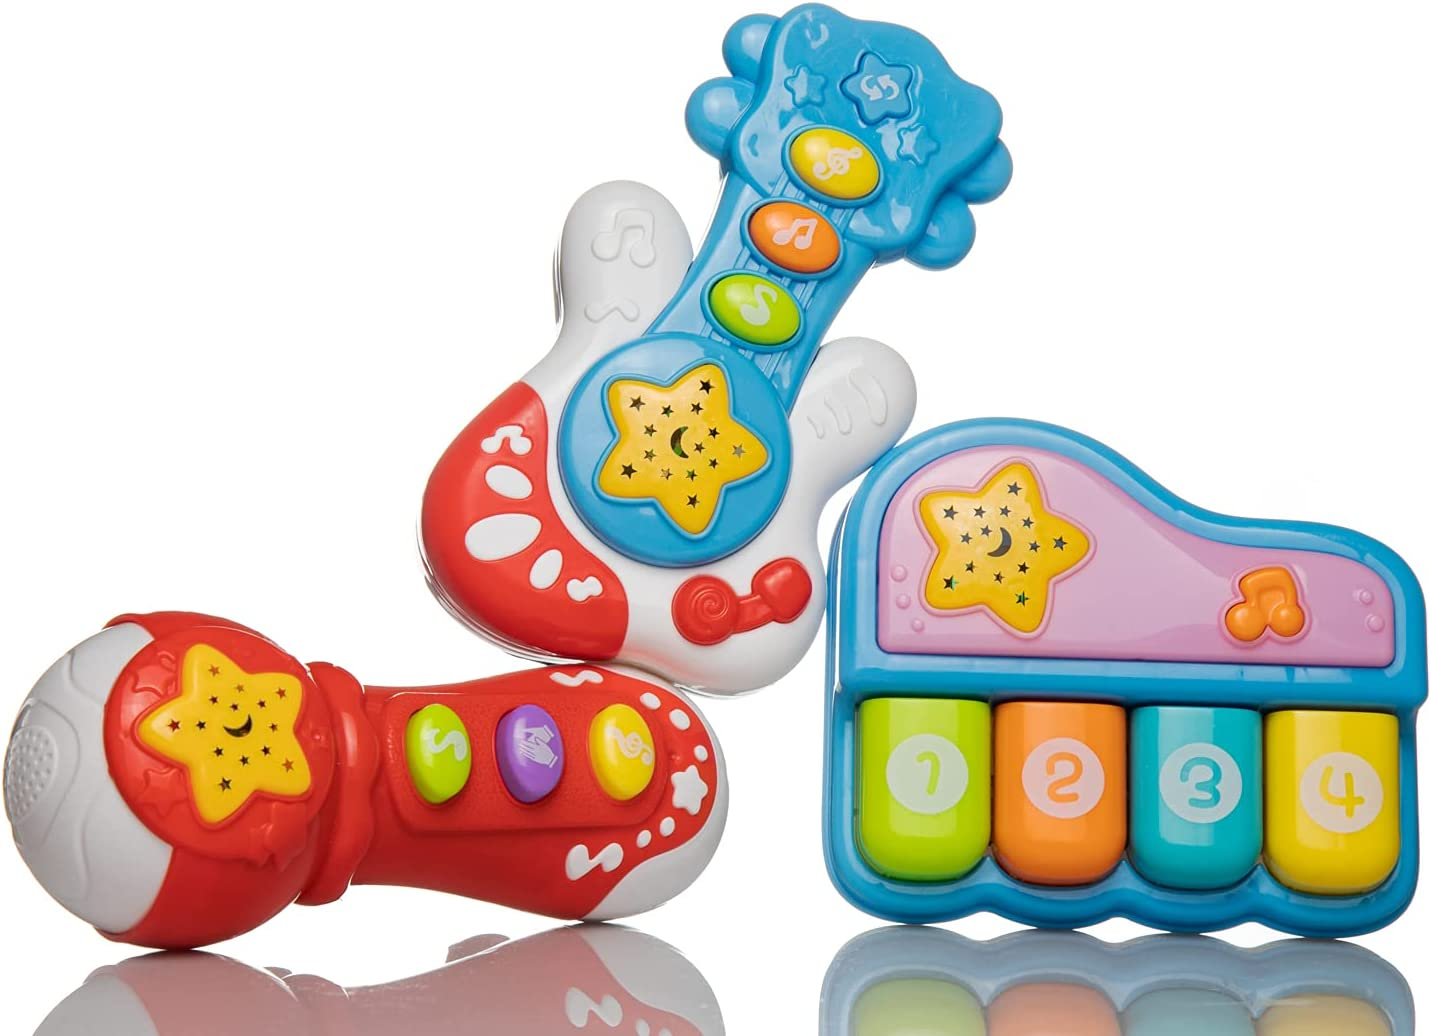 Hey Kiddo Musical Toy Set for Babies, Piano, Guitar and Mic with Songs, Music Sounds and Effects, Toddler or Baby's Educational Toy for 18 Months Up